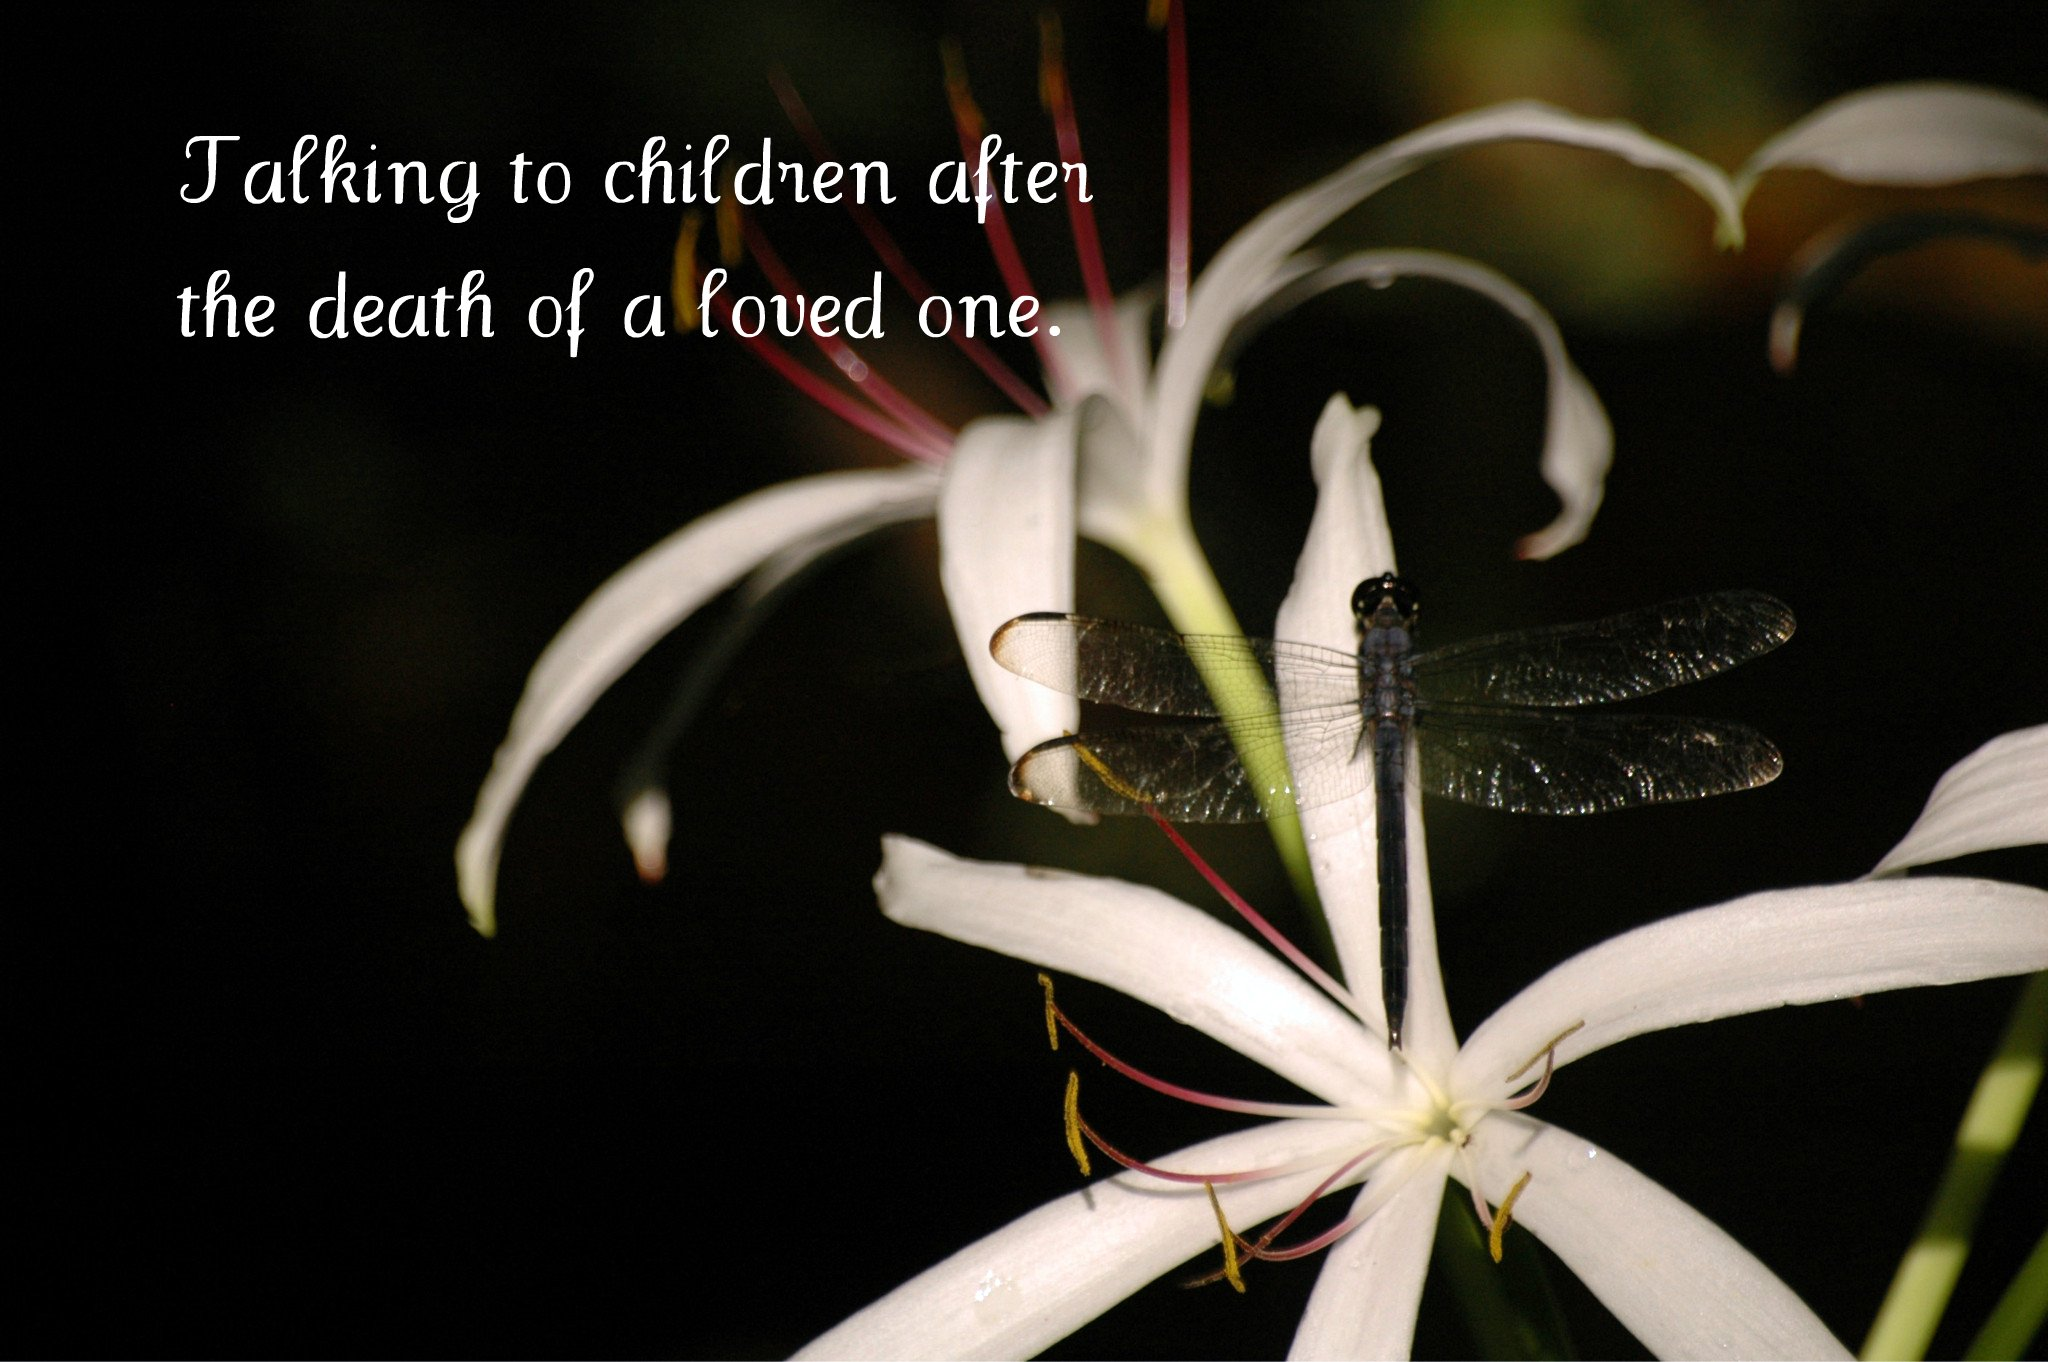 talking to children after the death of a loved one